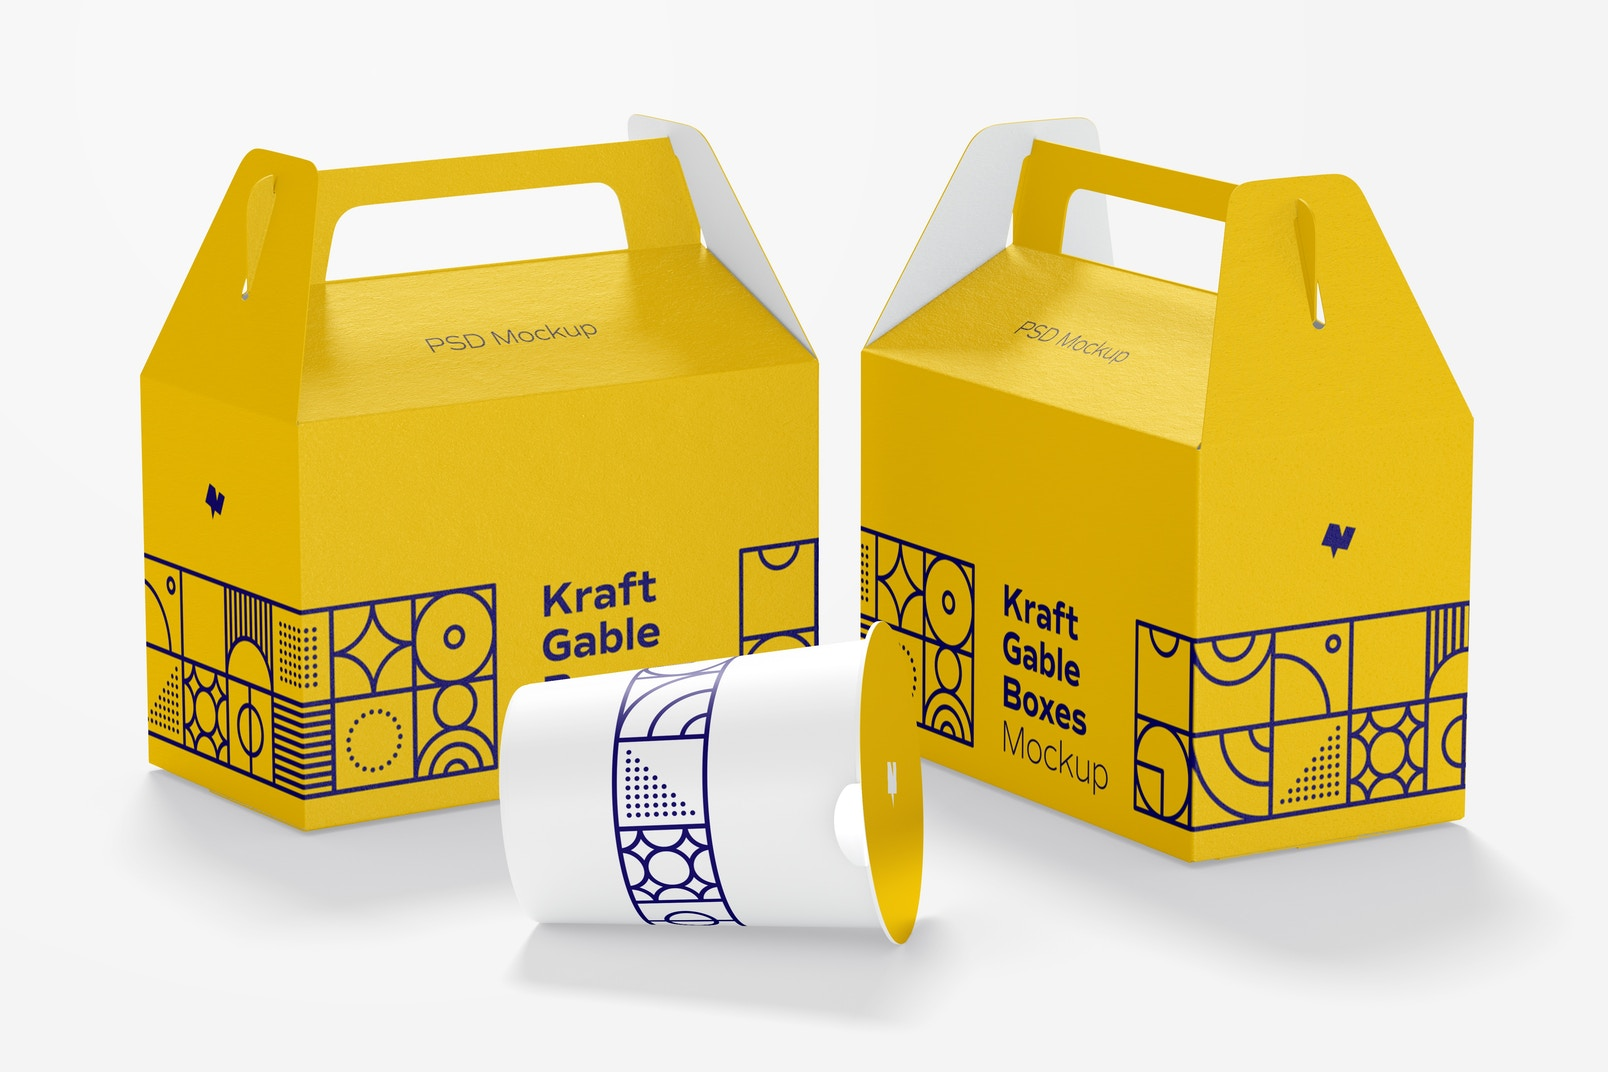 Kraft Gable Boxes Mockup, Left and Right View